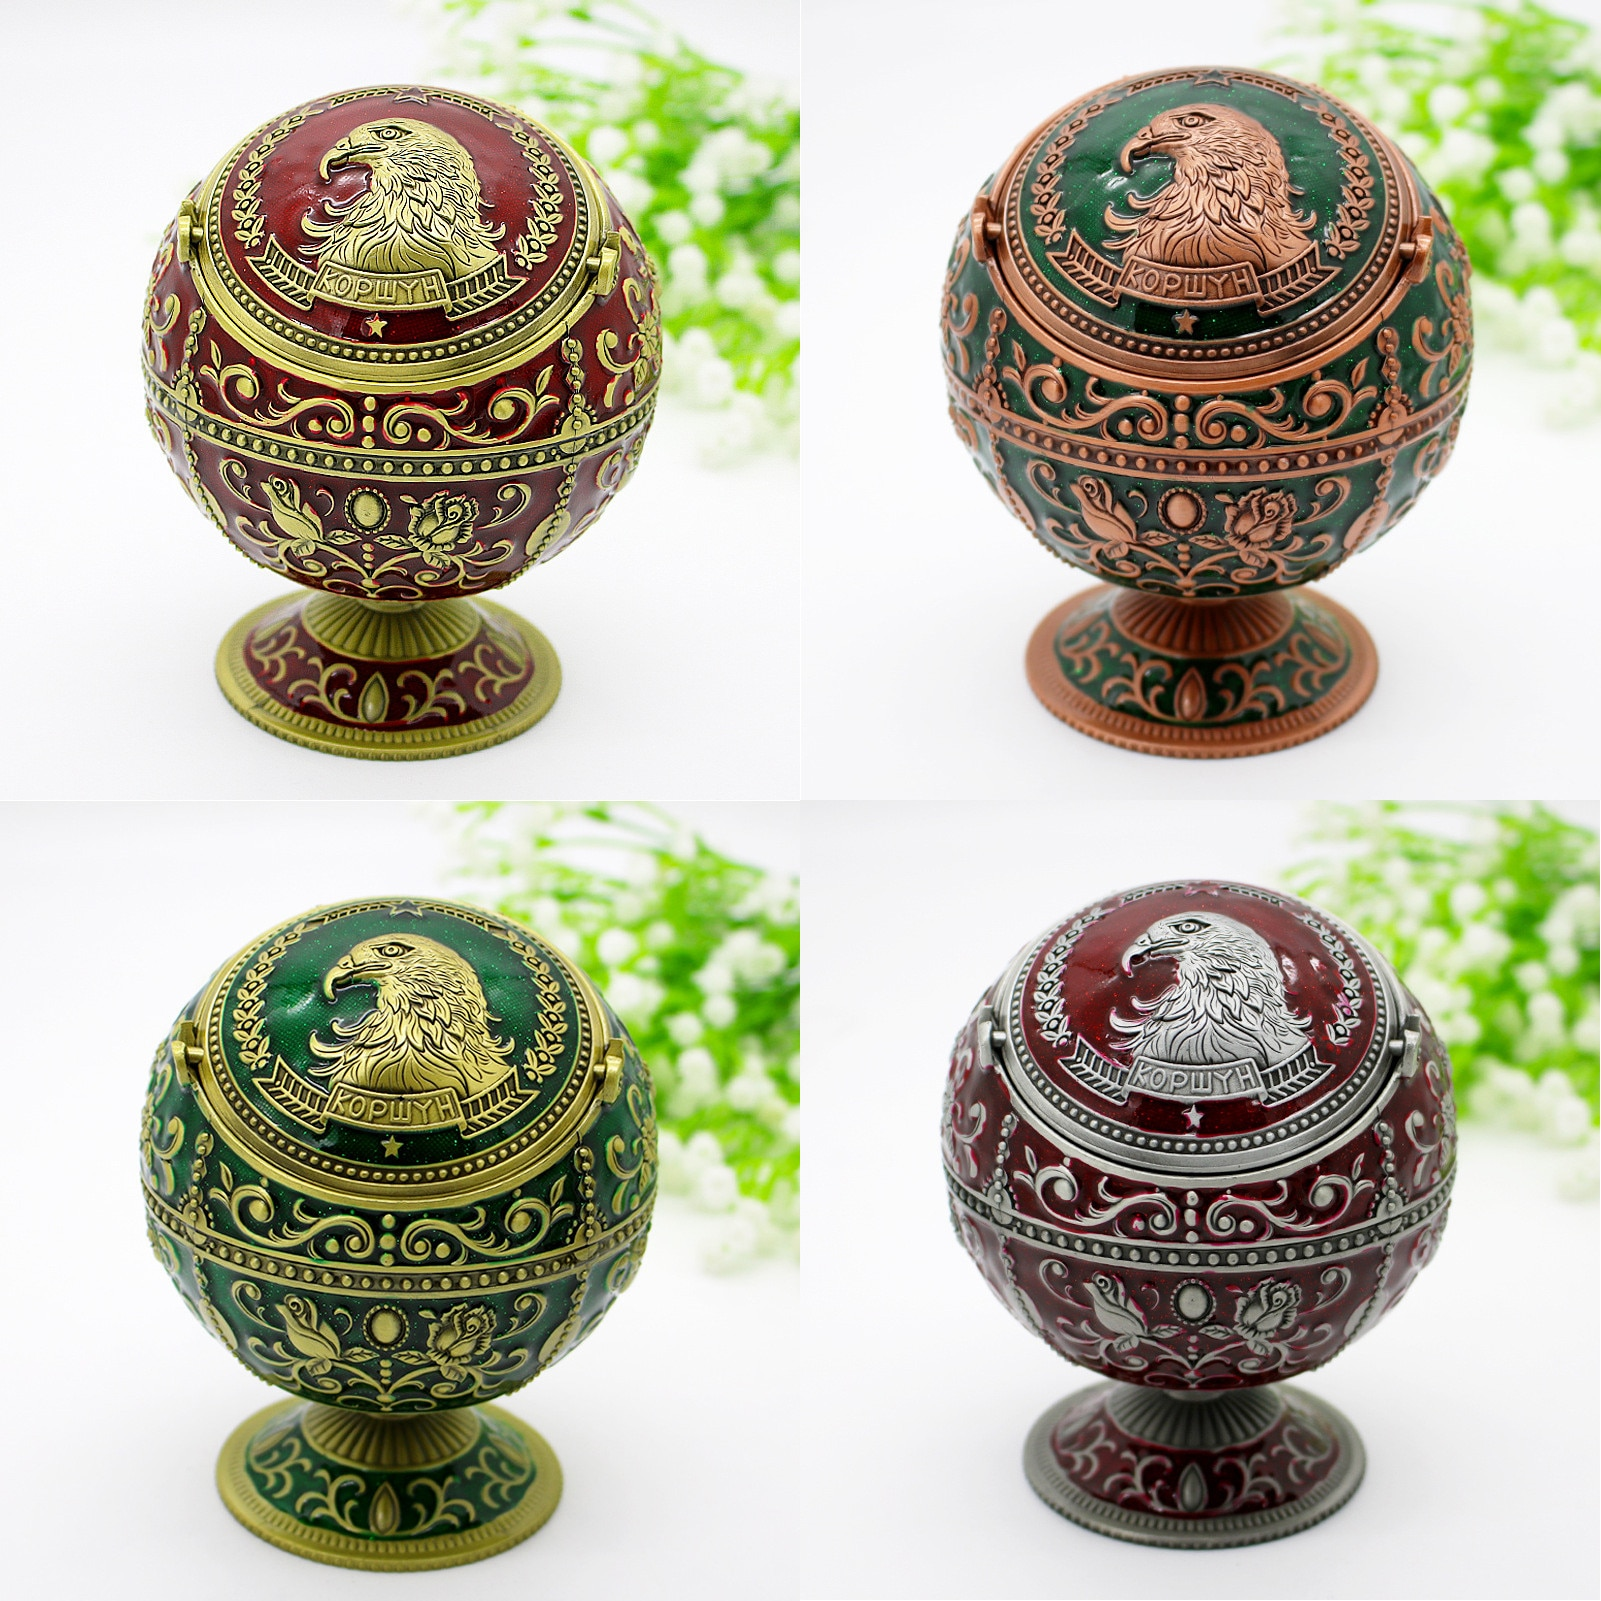 Vintage Metal Ashtray Portable Windproof Smoking with Lid Unique Home Decoration Craft Gift Accessories